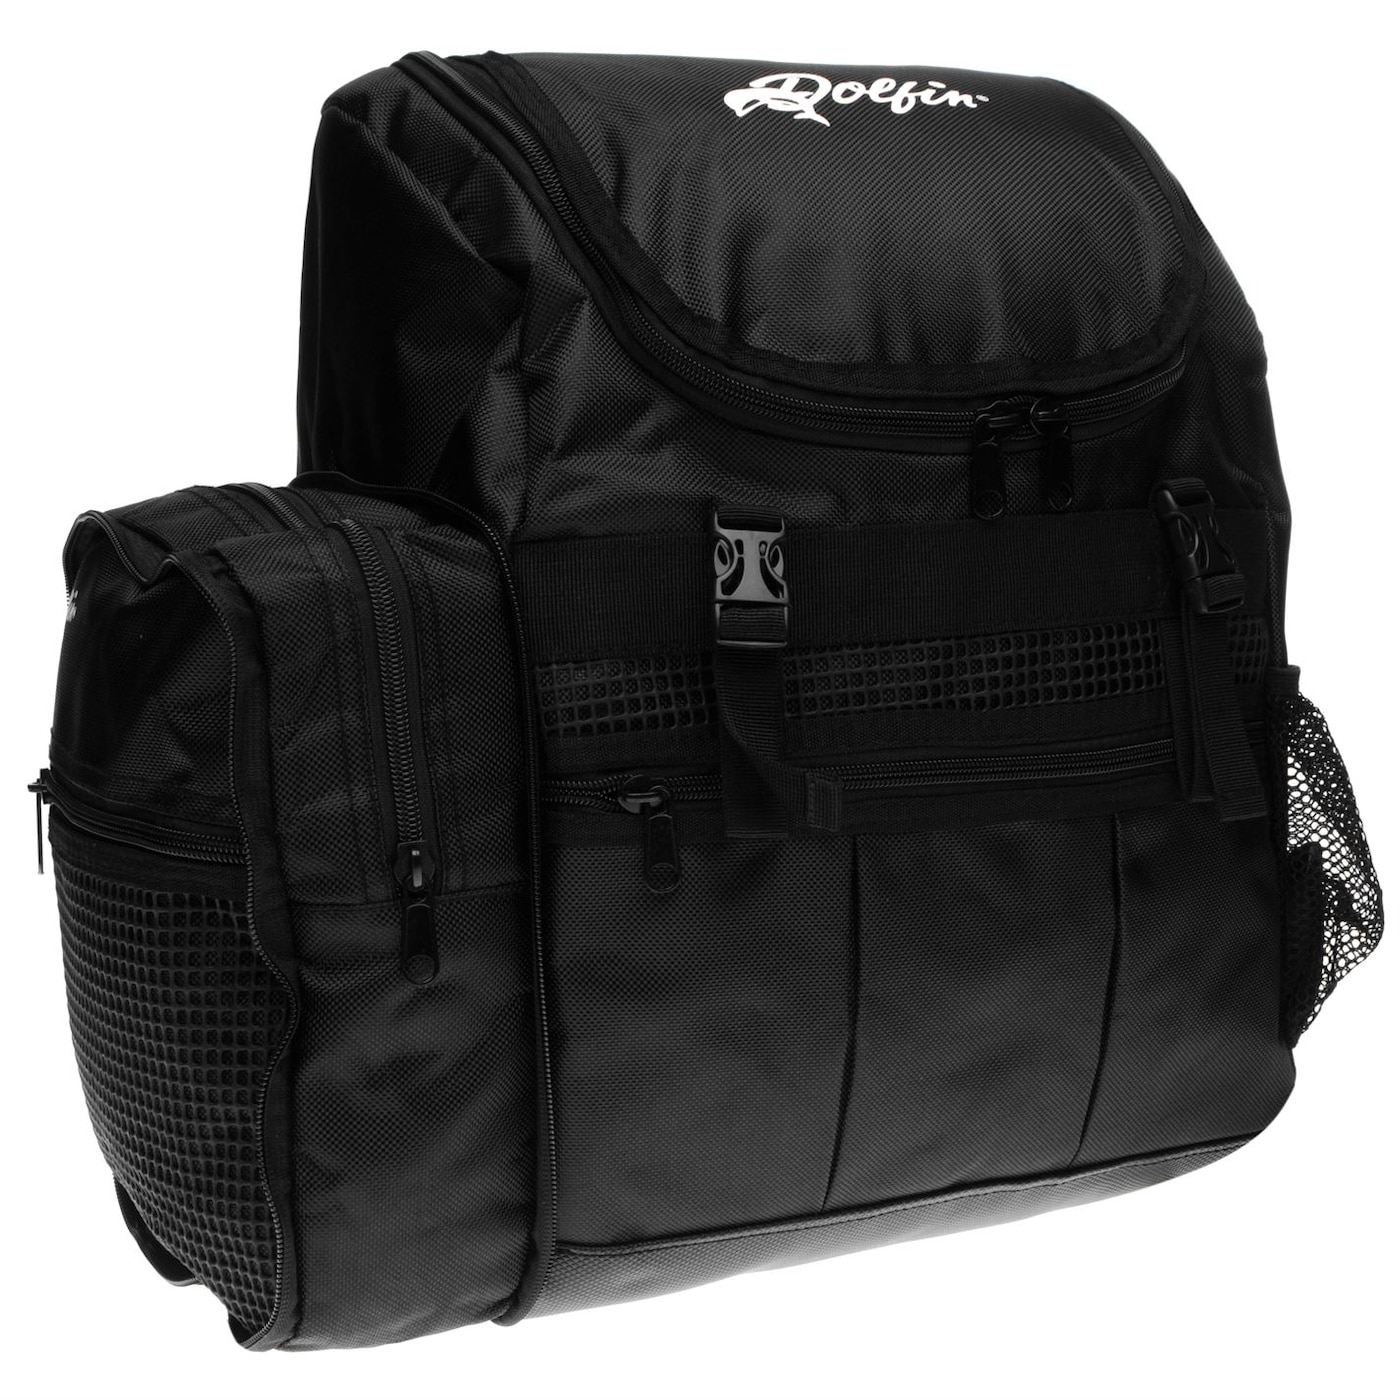 Unbranded Team Backpack